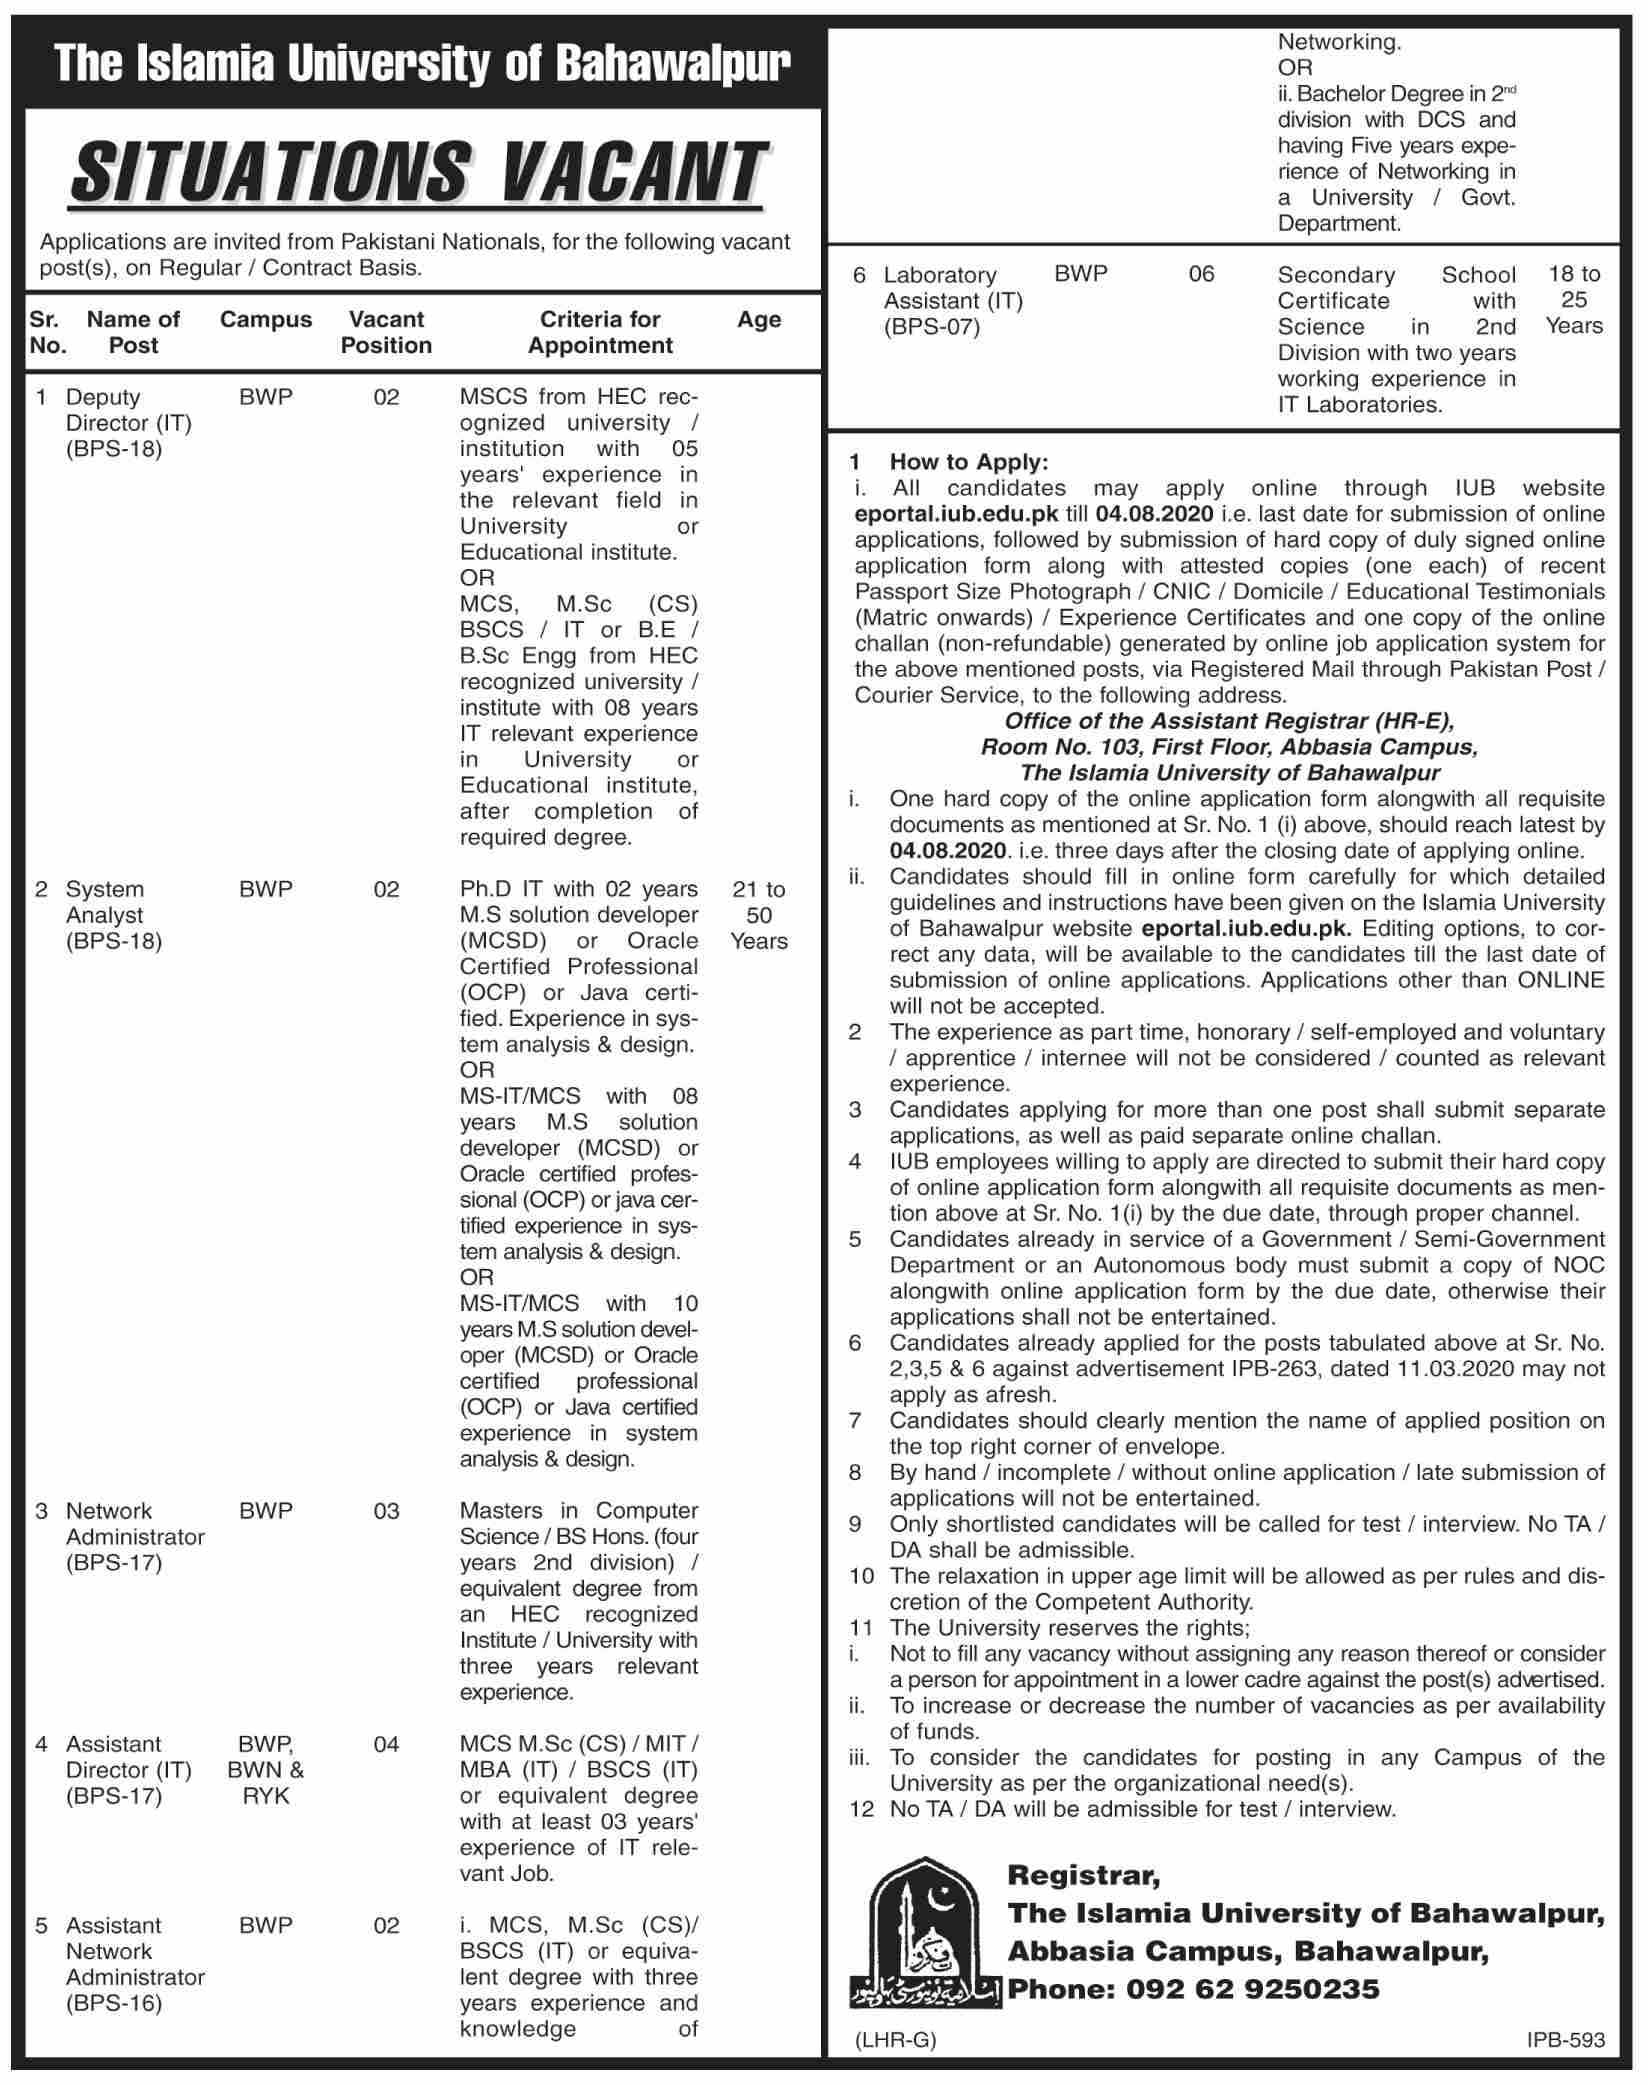 The Islamia University of Bahawalpur IUB Jobs July 2020